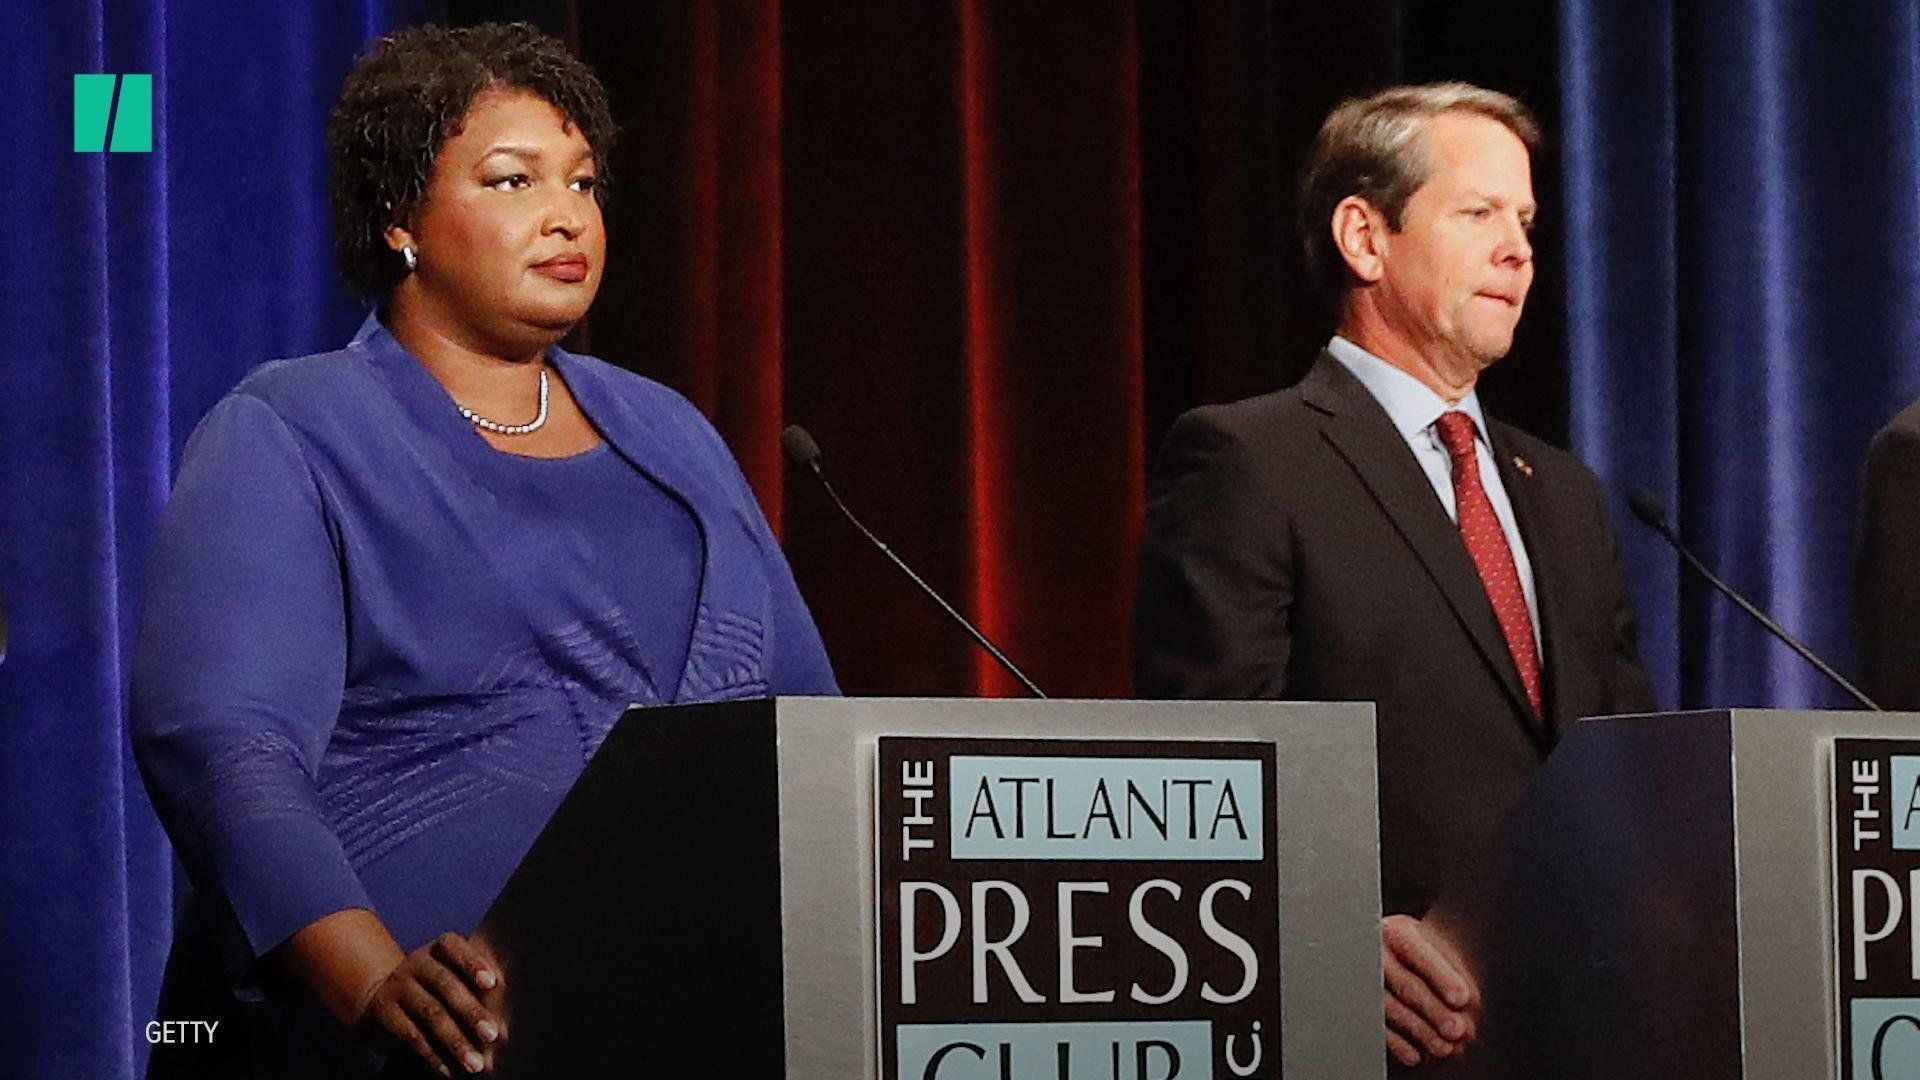 Stacey Abrams slams Brian Kemp after he accuses Democrats of voter 'hack'